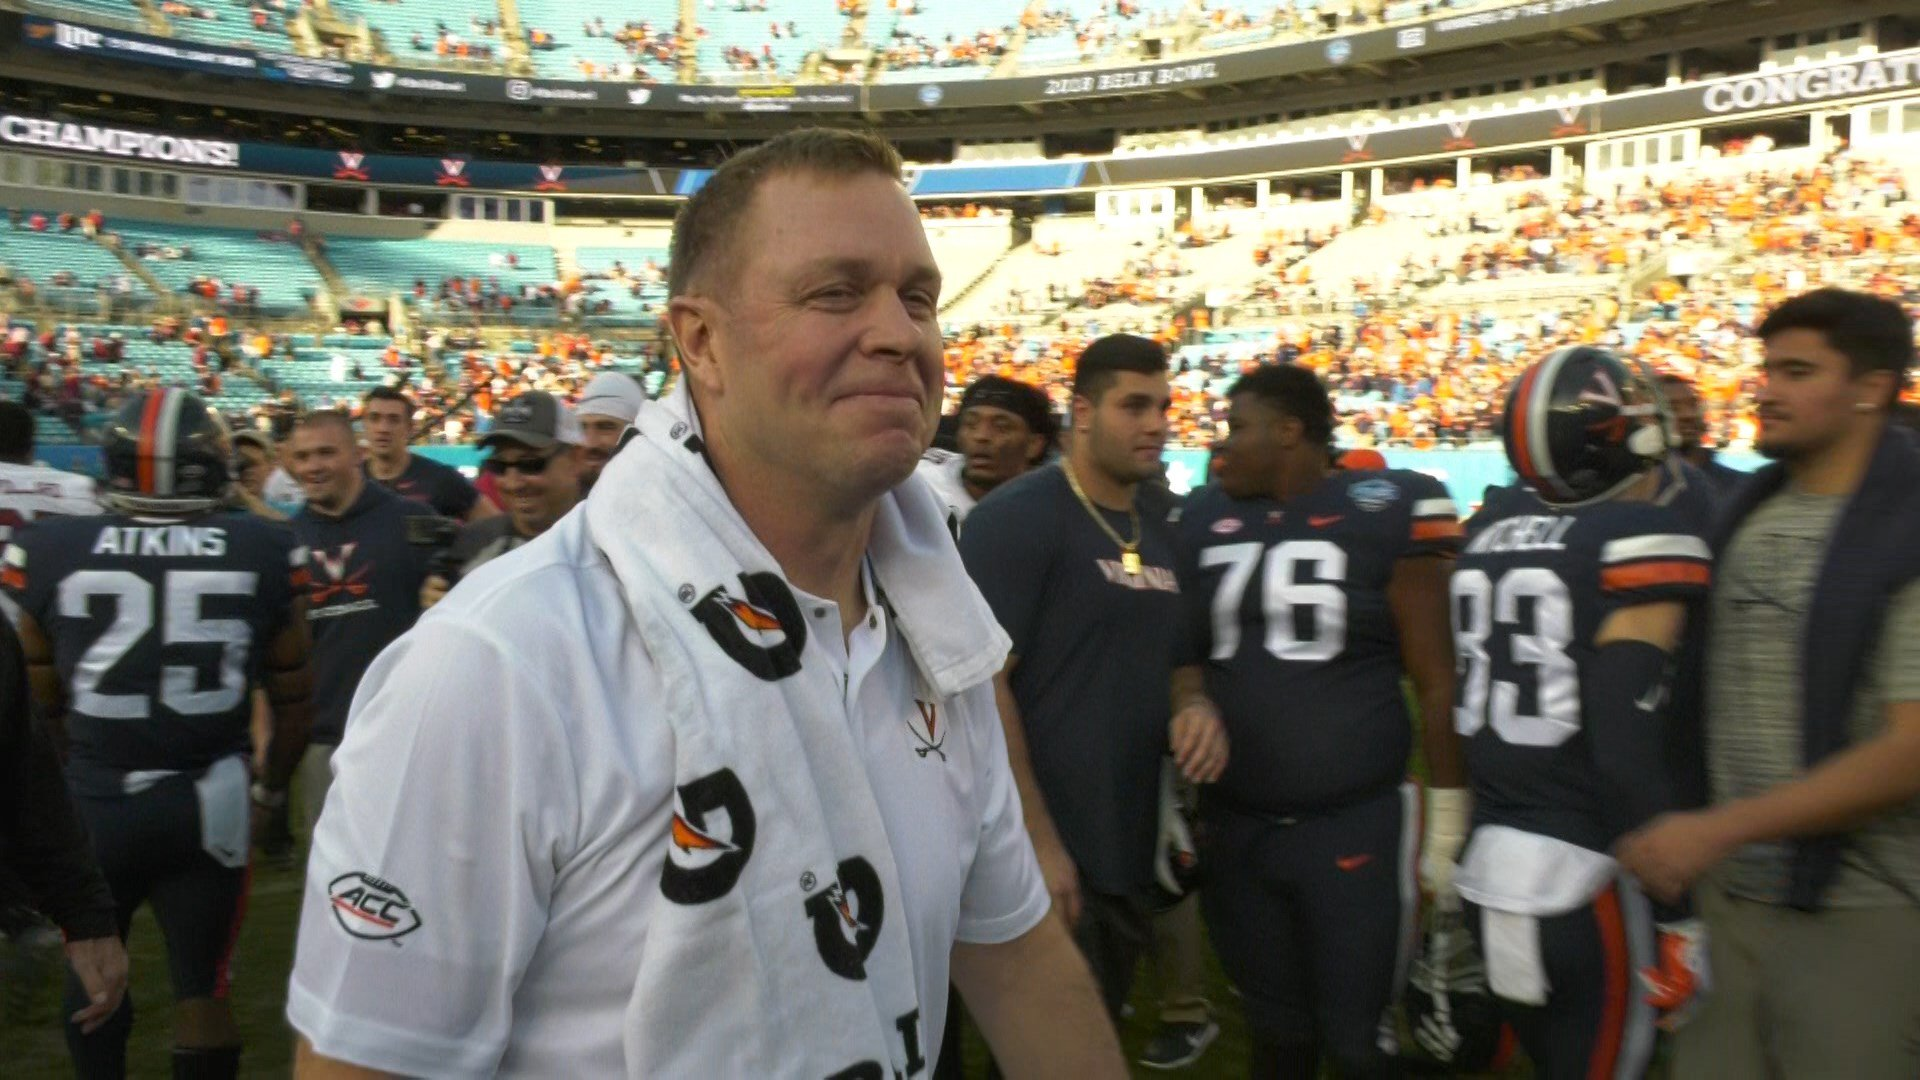 Bronco Mendenhall was all smiles following the win in the Belk Bowl